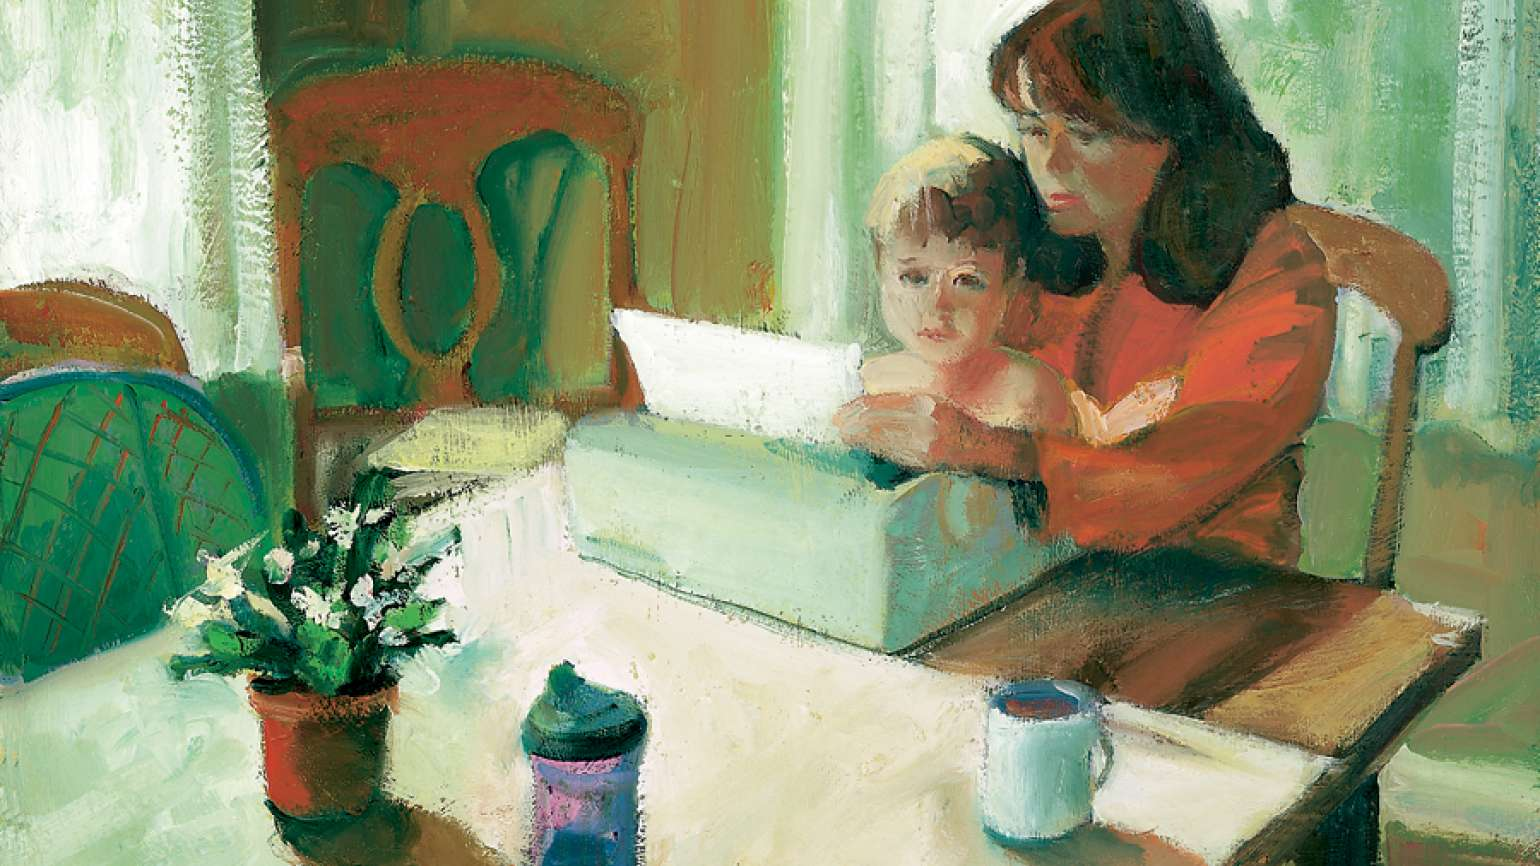 An artist's rendering of a woman sitting at a typewriter with a child in her lap